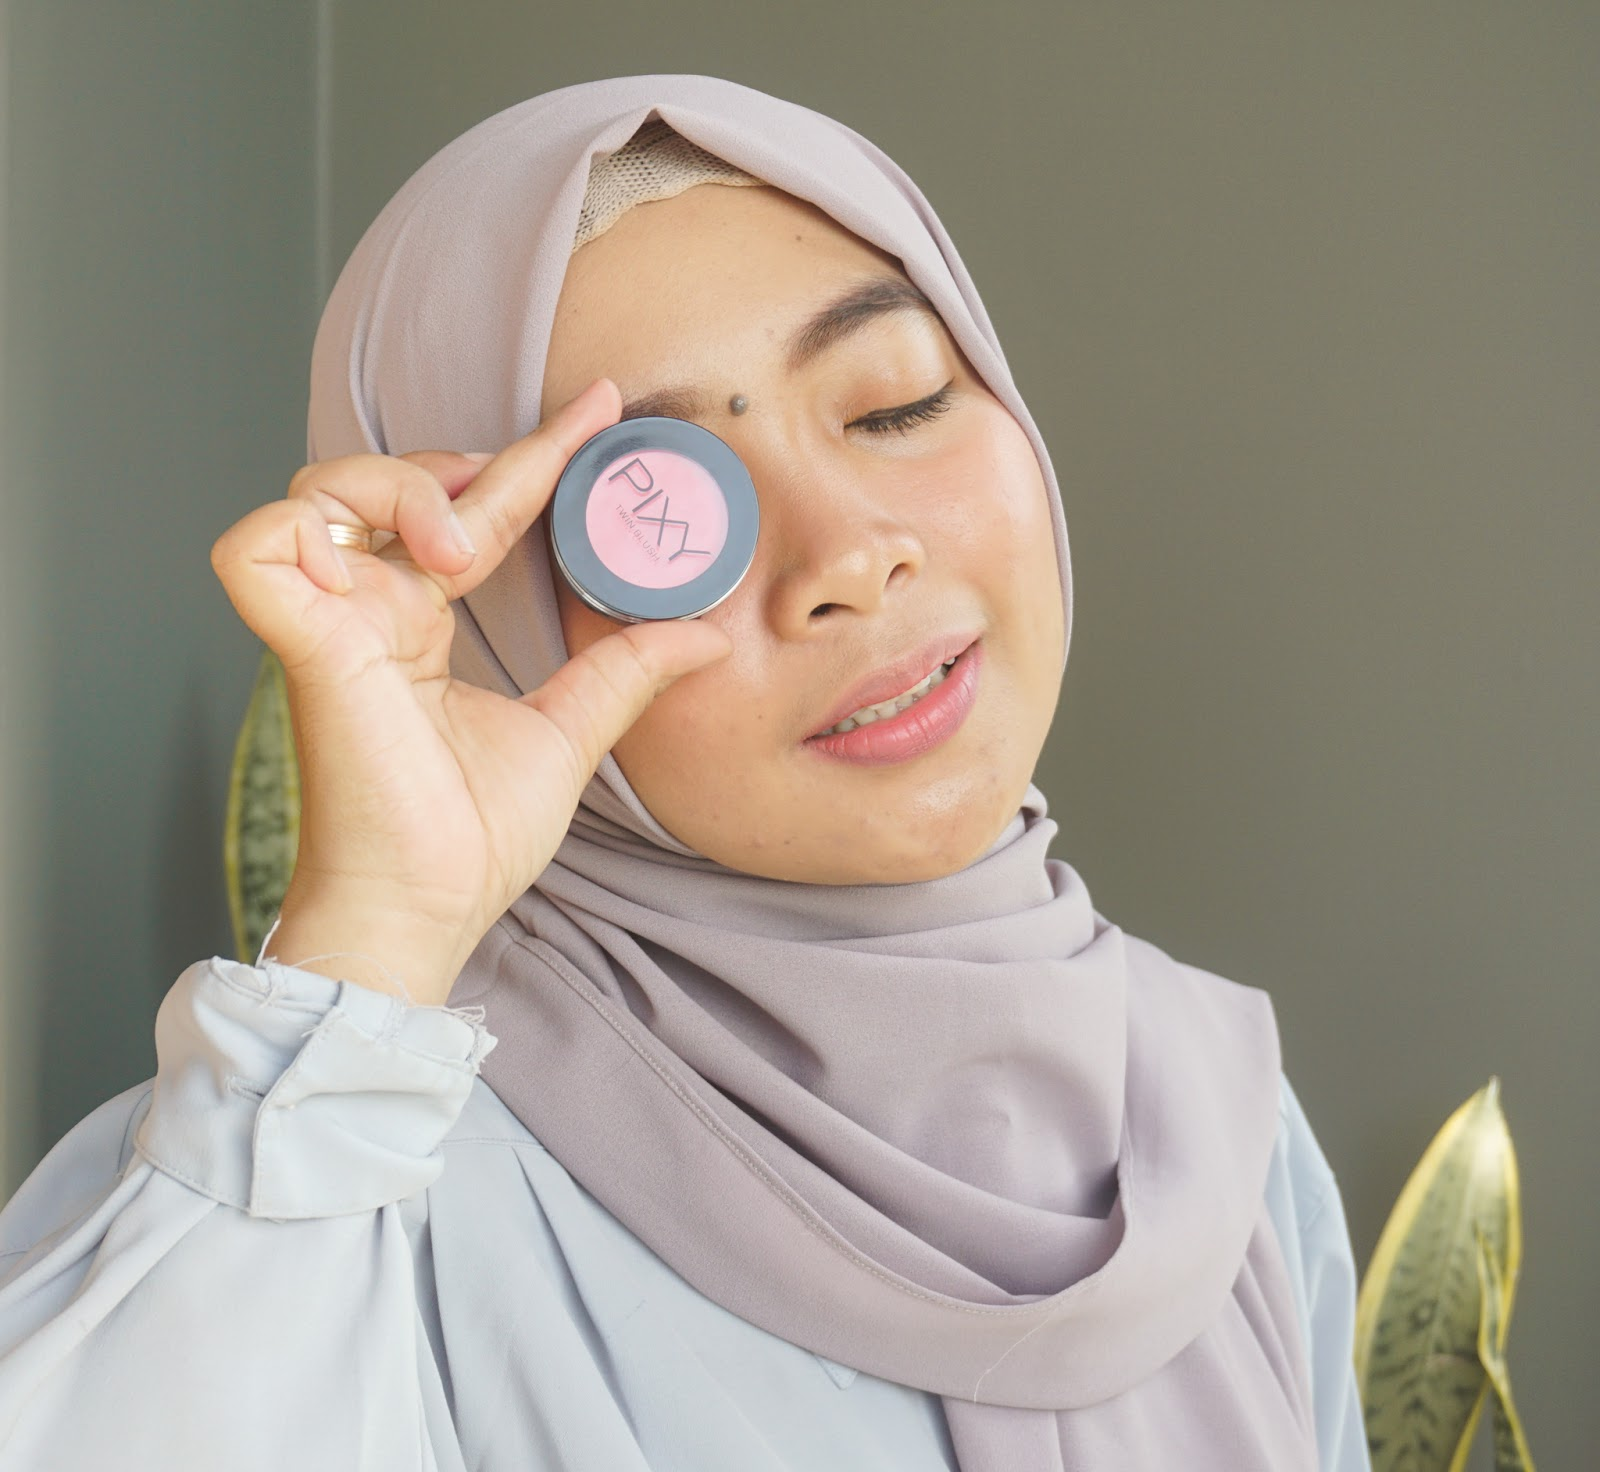 review pixy twin blush active pink, swatch pixy twin blush active pink